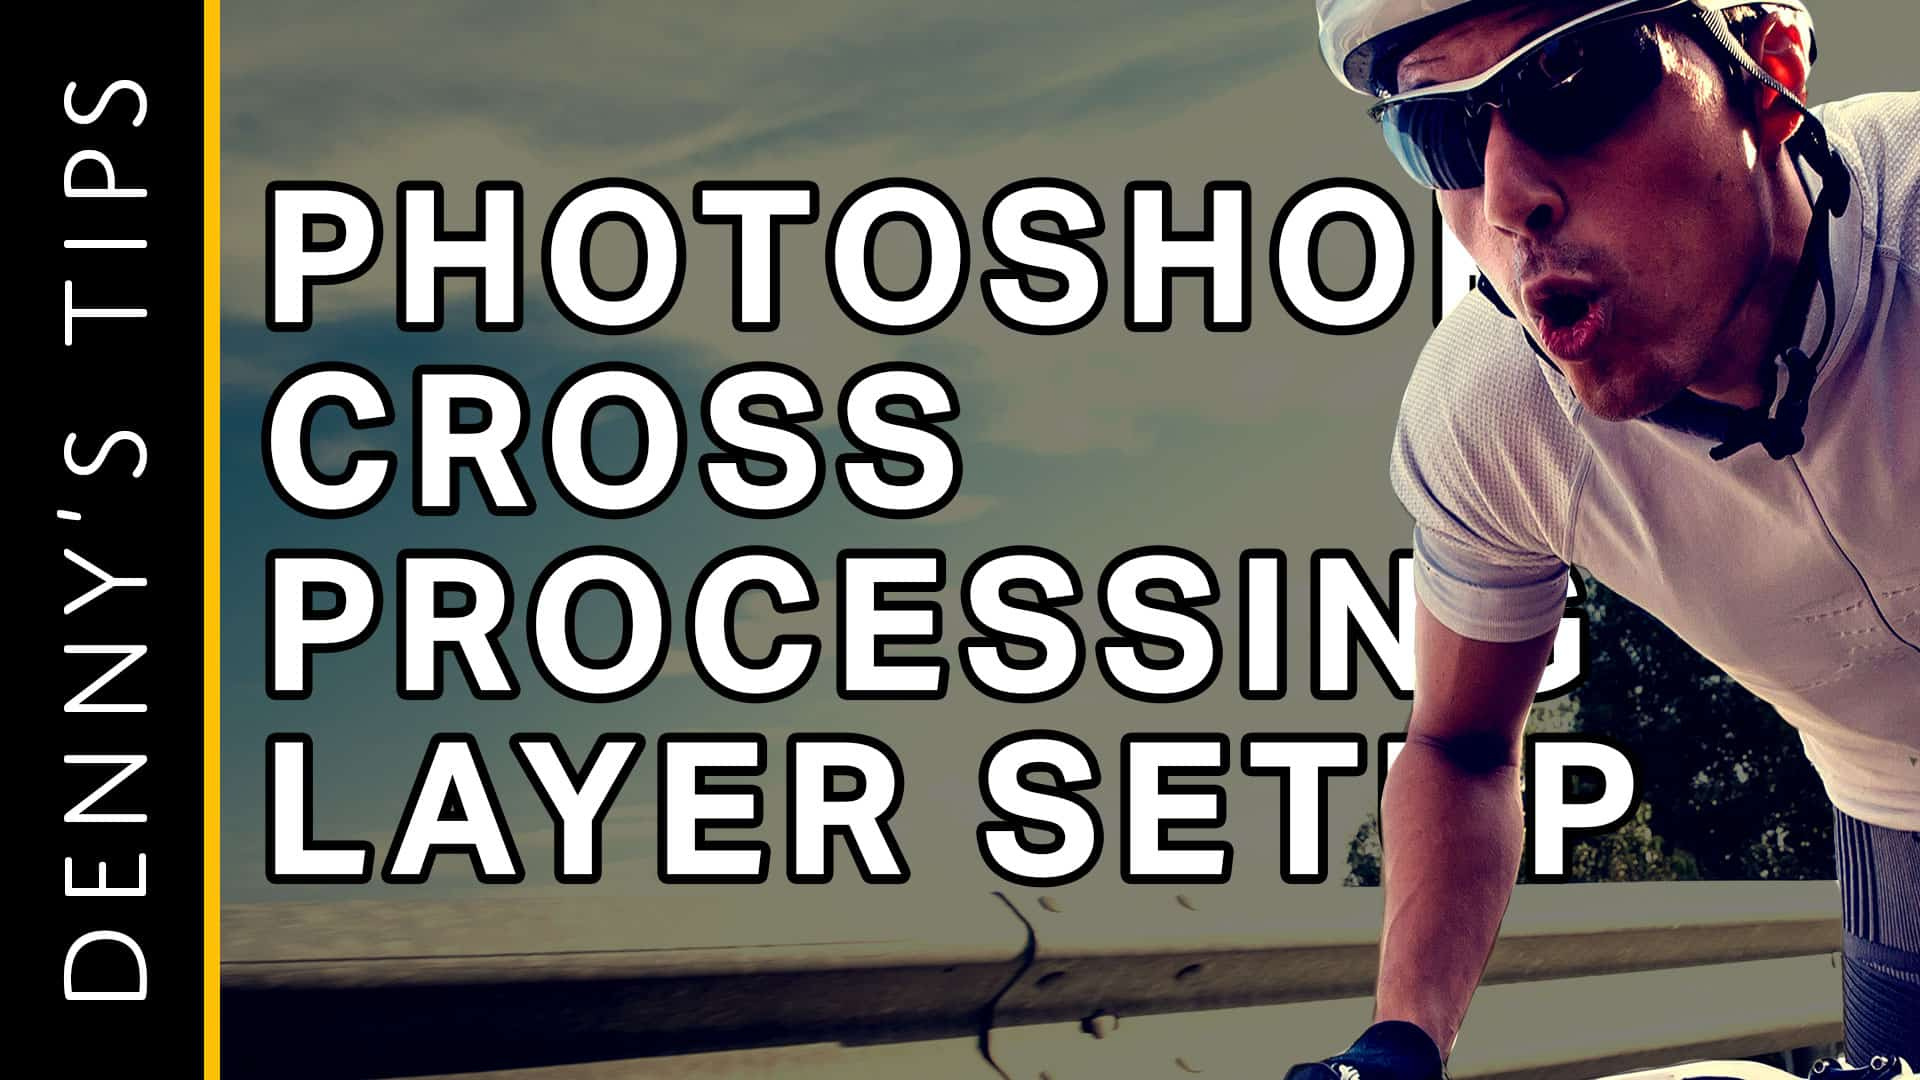 How to Easily Cross Process Your Photos in Photoshop